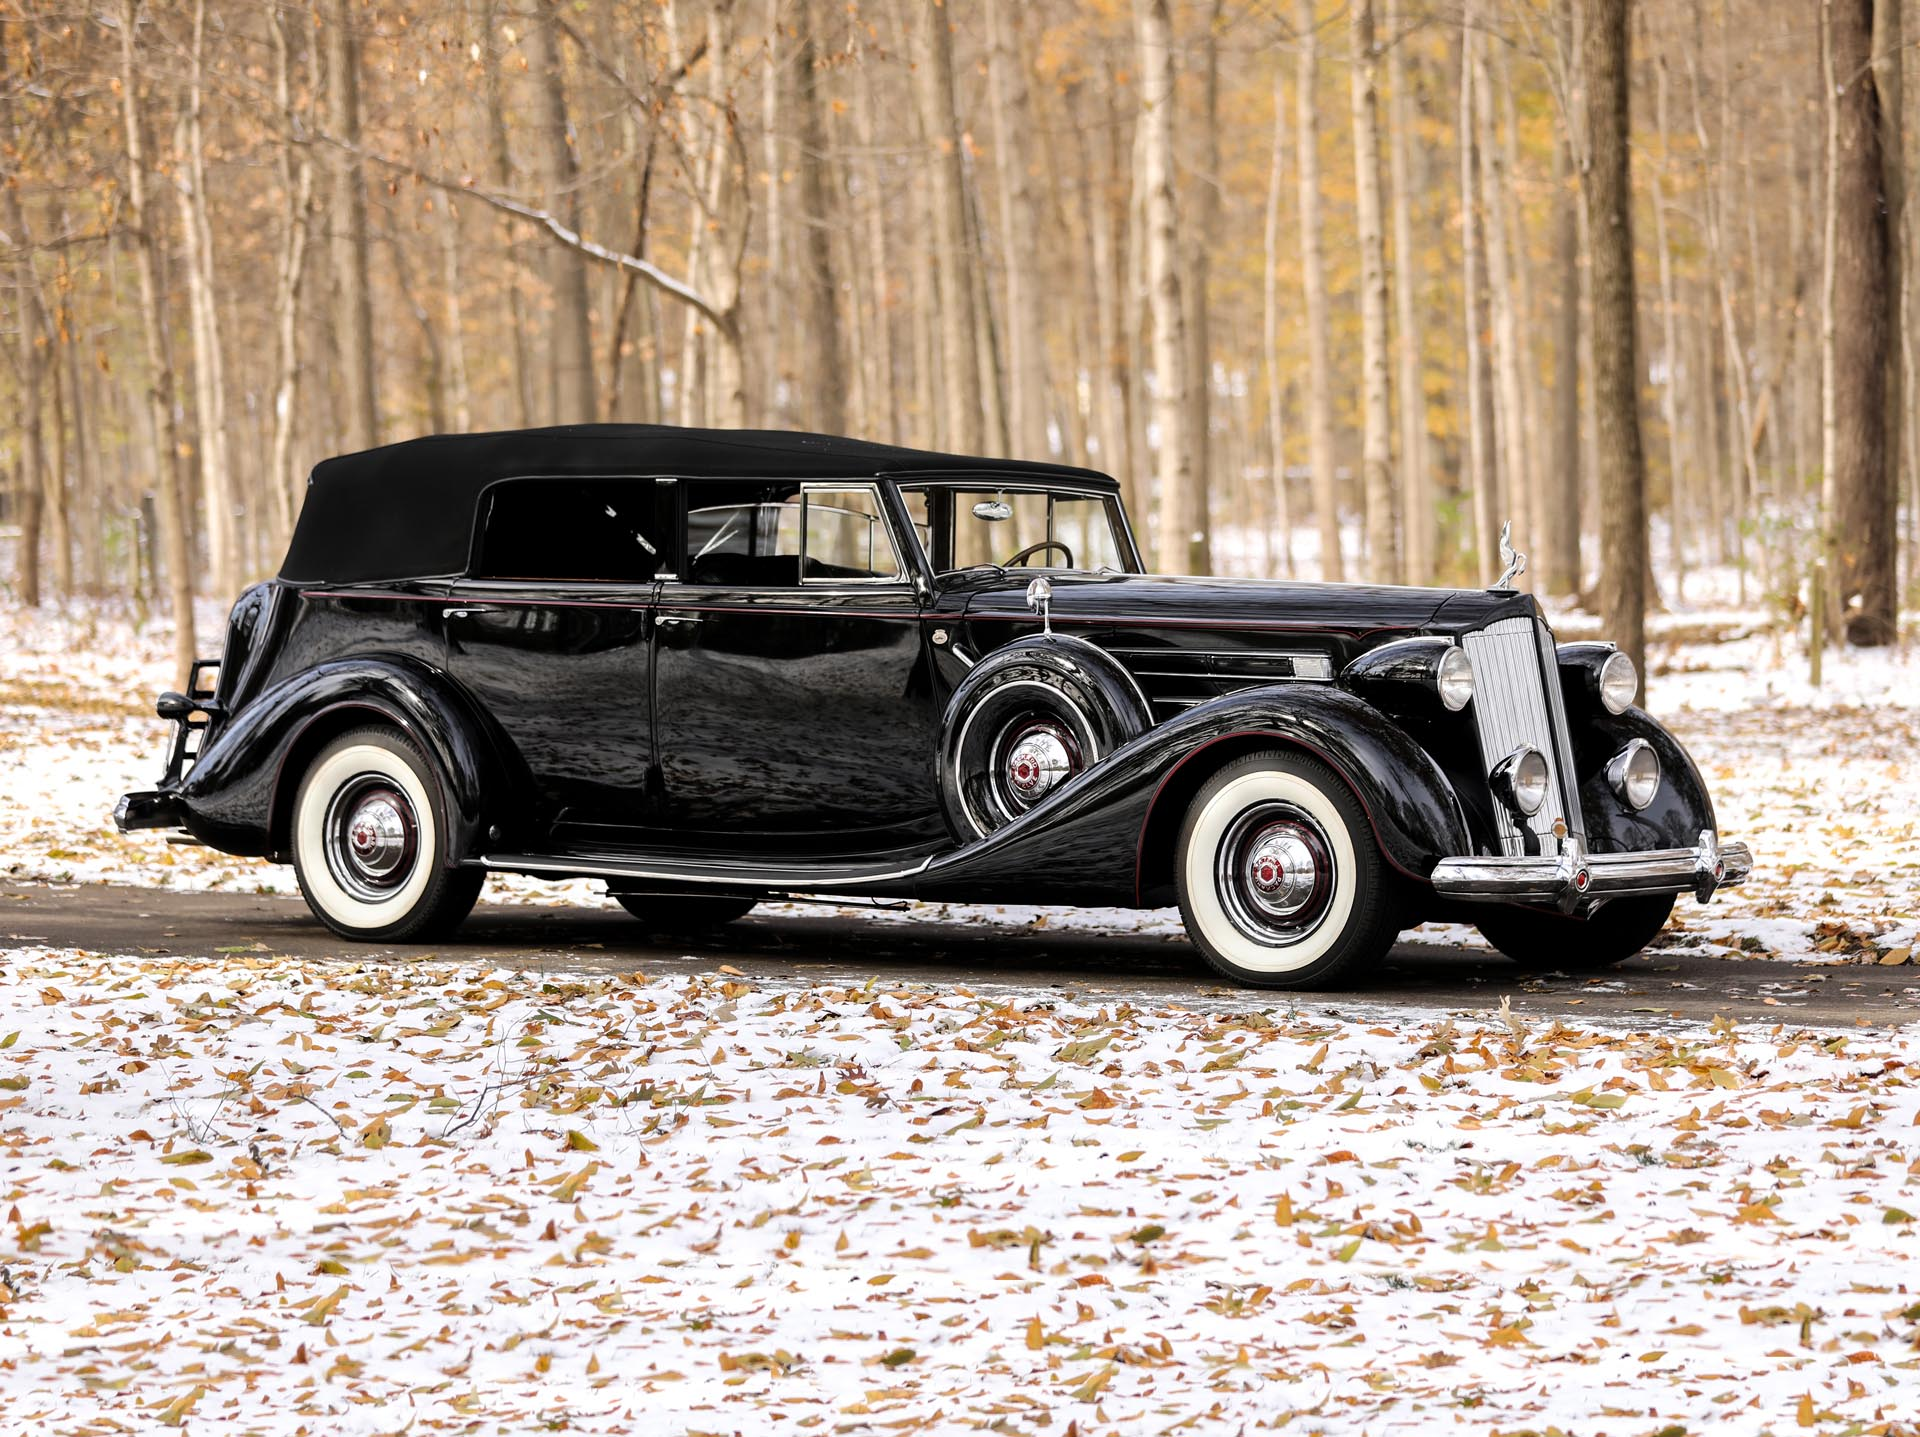 1937 Packard Twelve 1508 Convertible Sedan